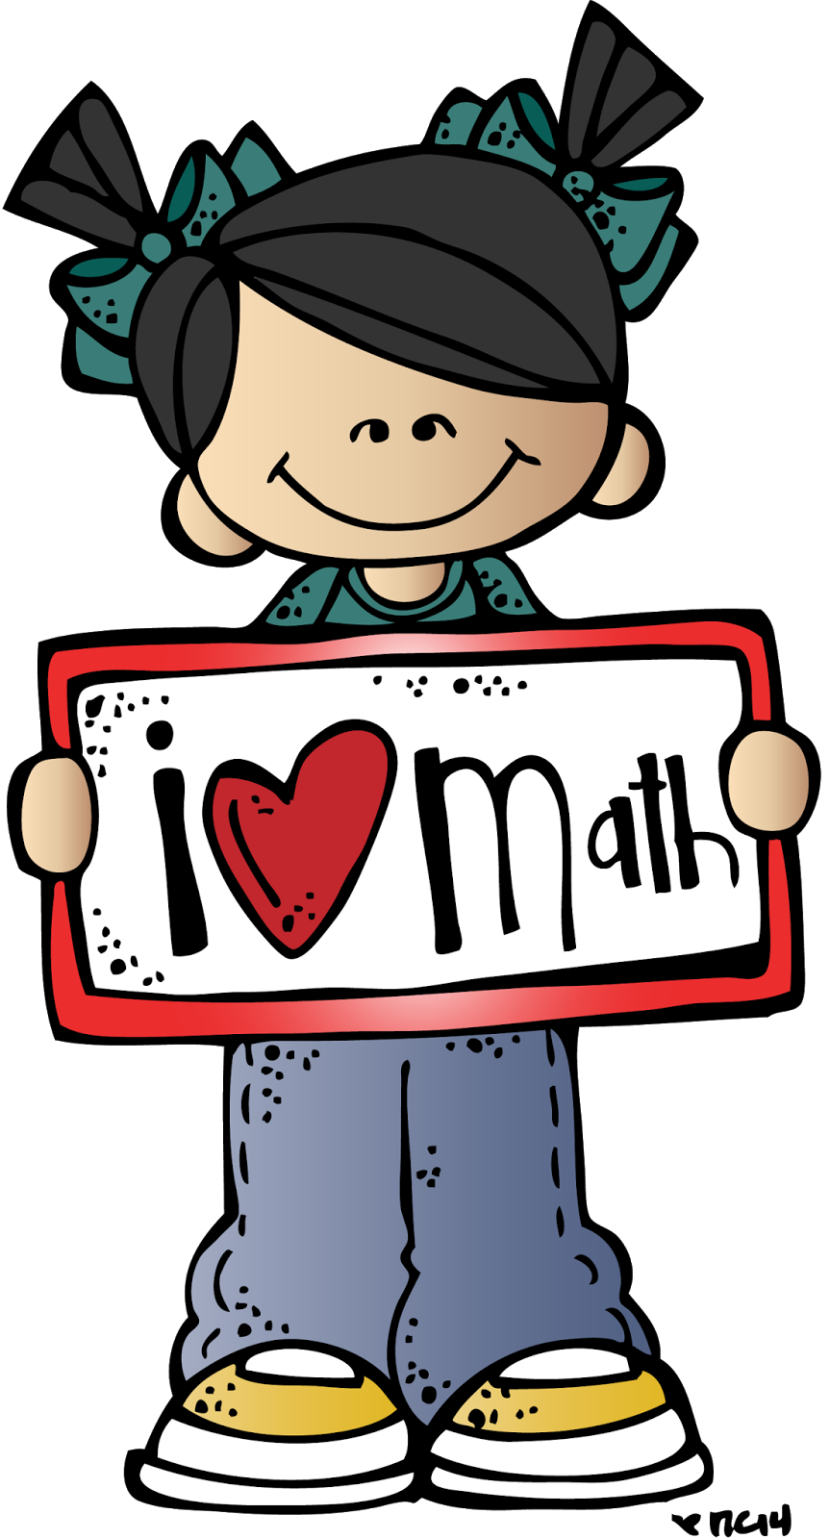 Anime math clipart clipart images gallery for free download.